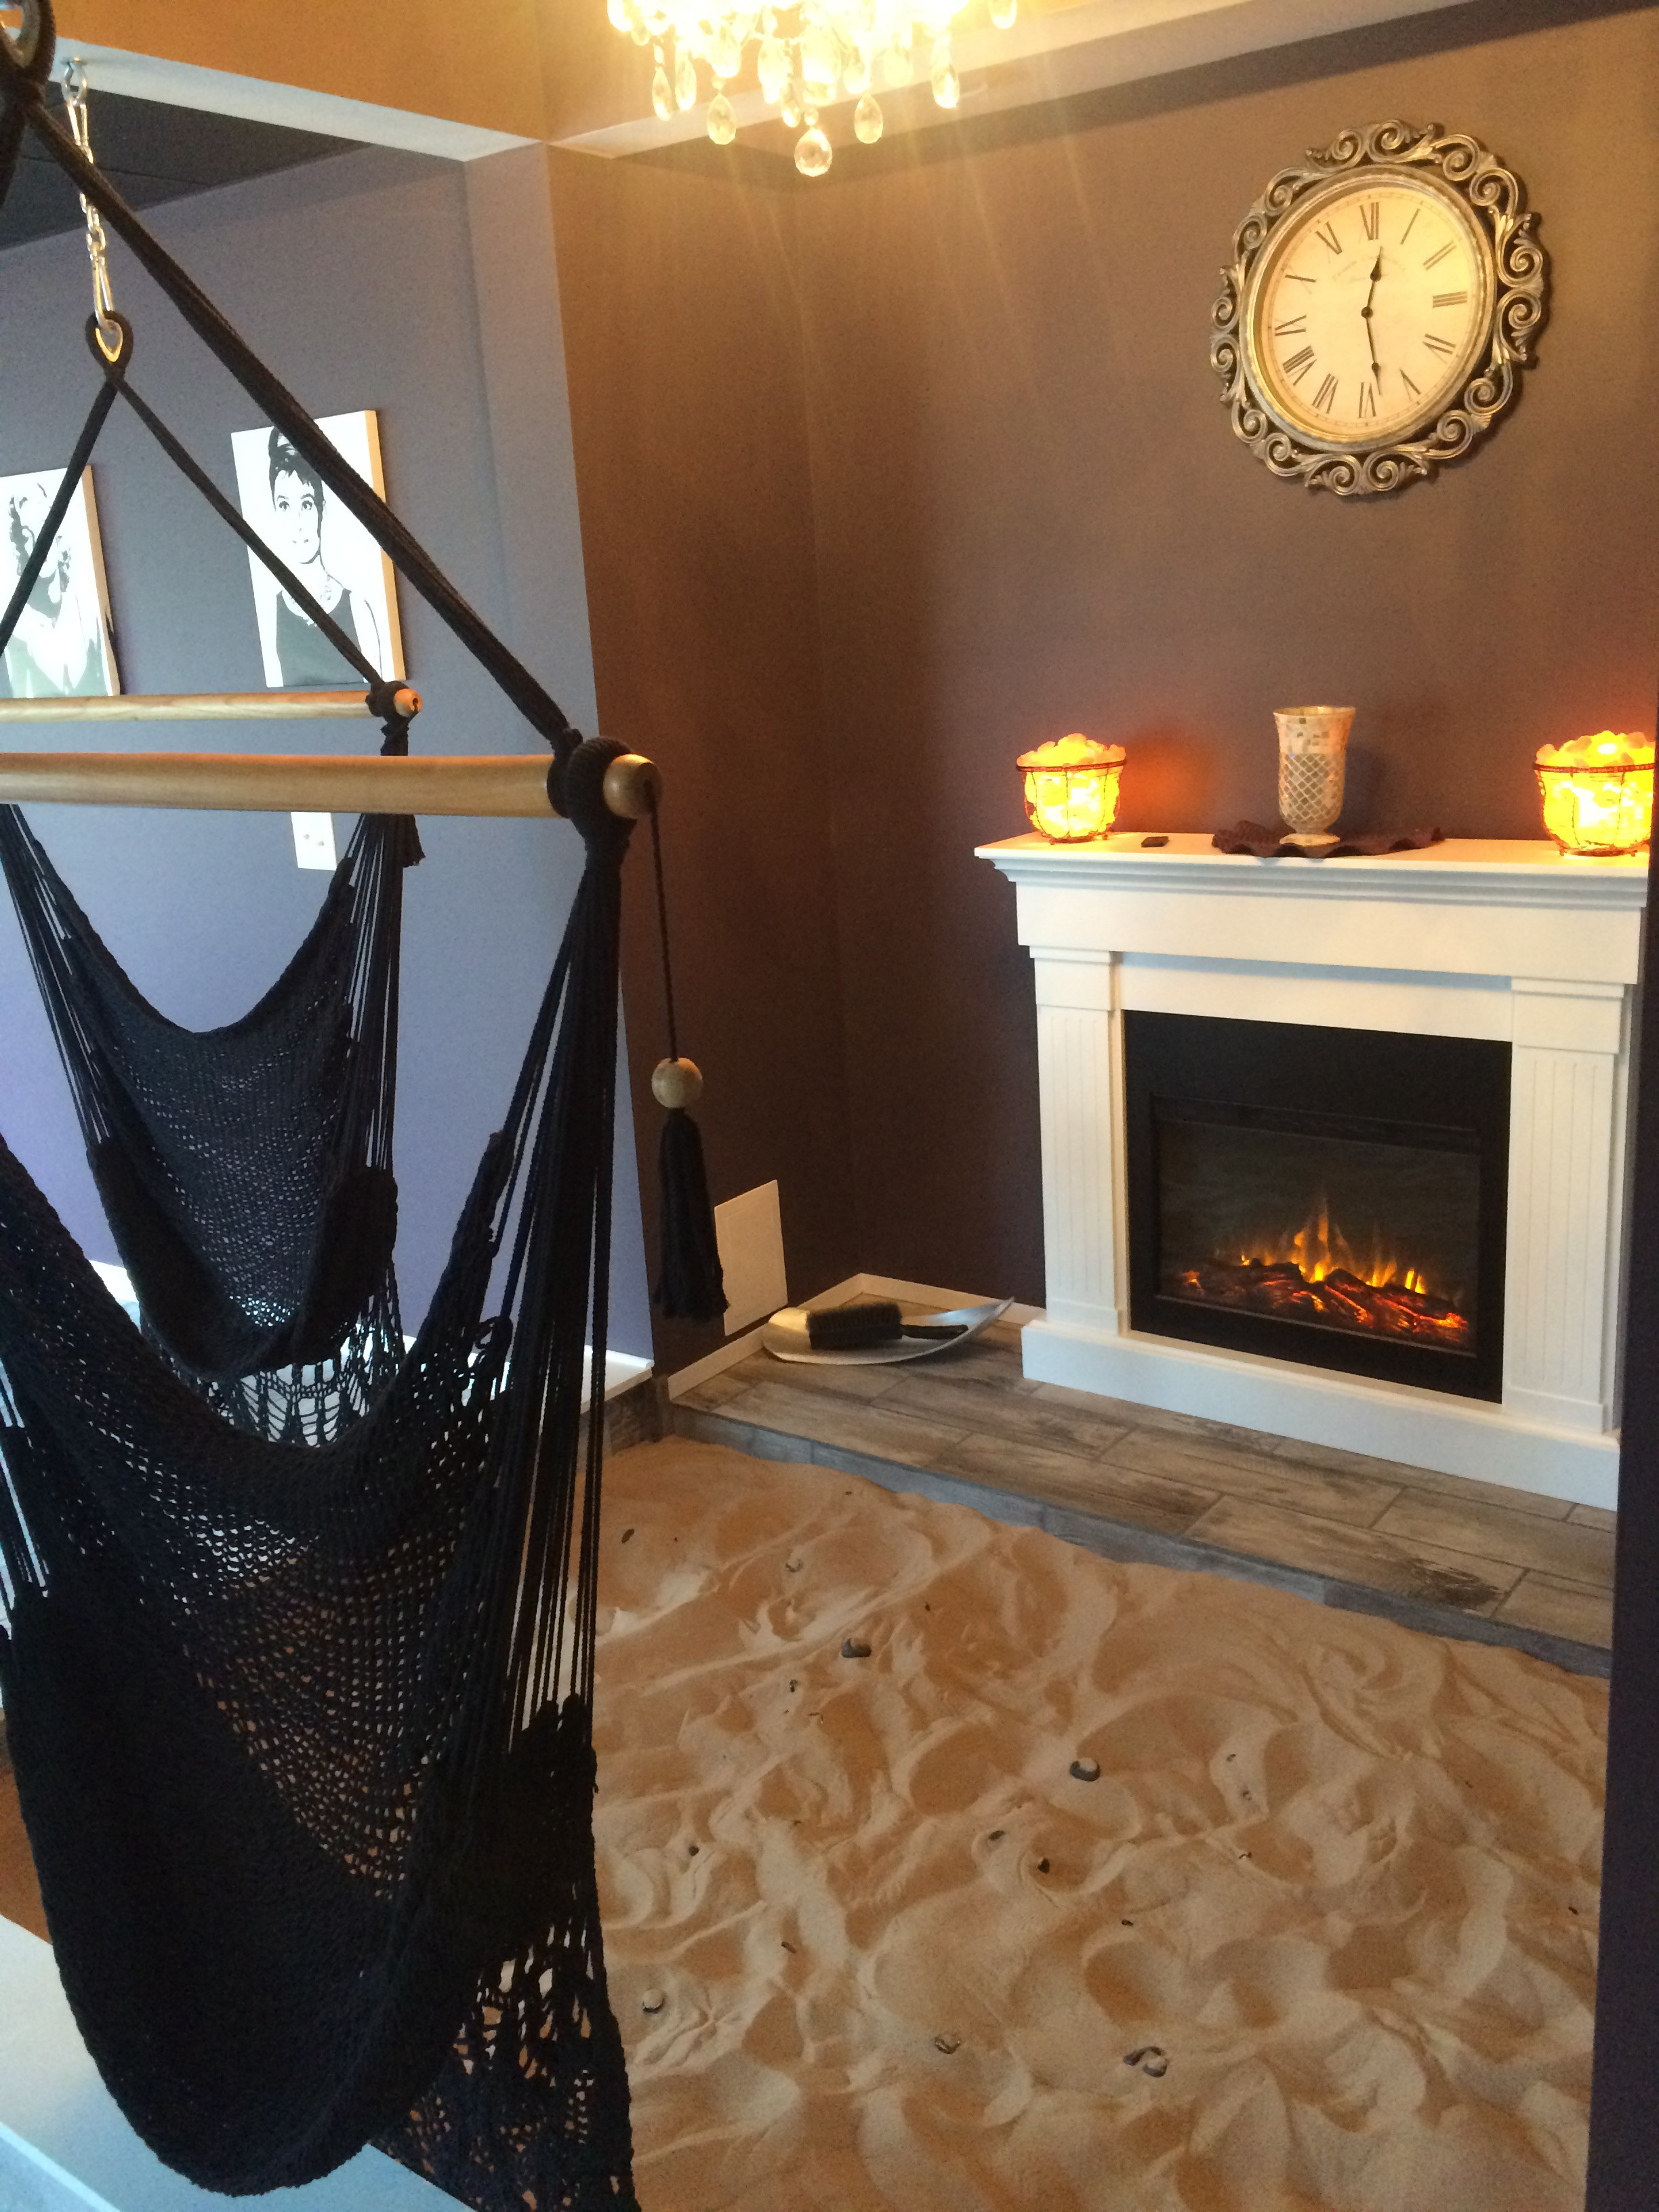 Swinging into Relaxation- customers can sit in the Himalayan swings hanging above sand pits at Skin Tight Studio